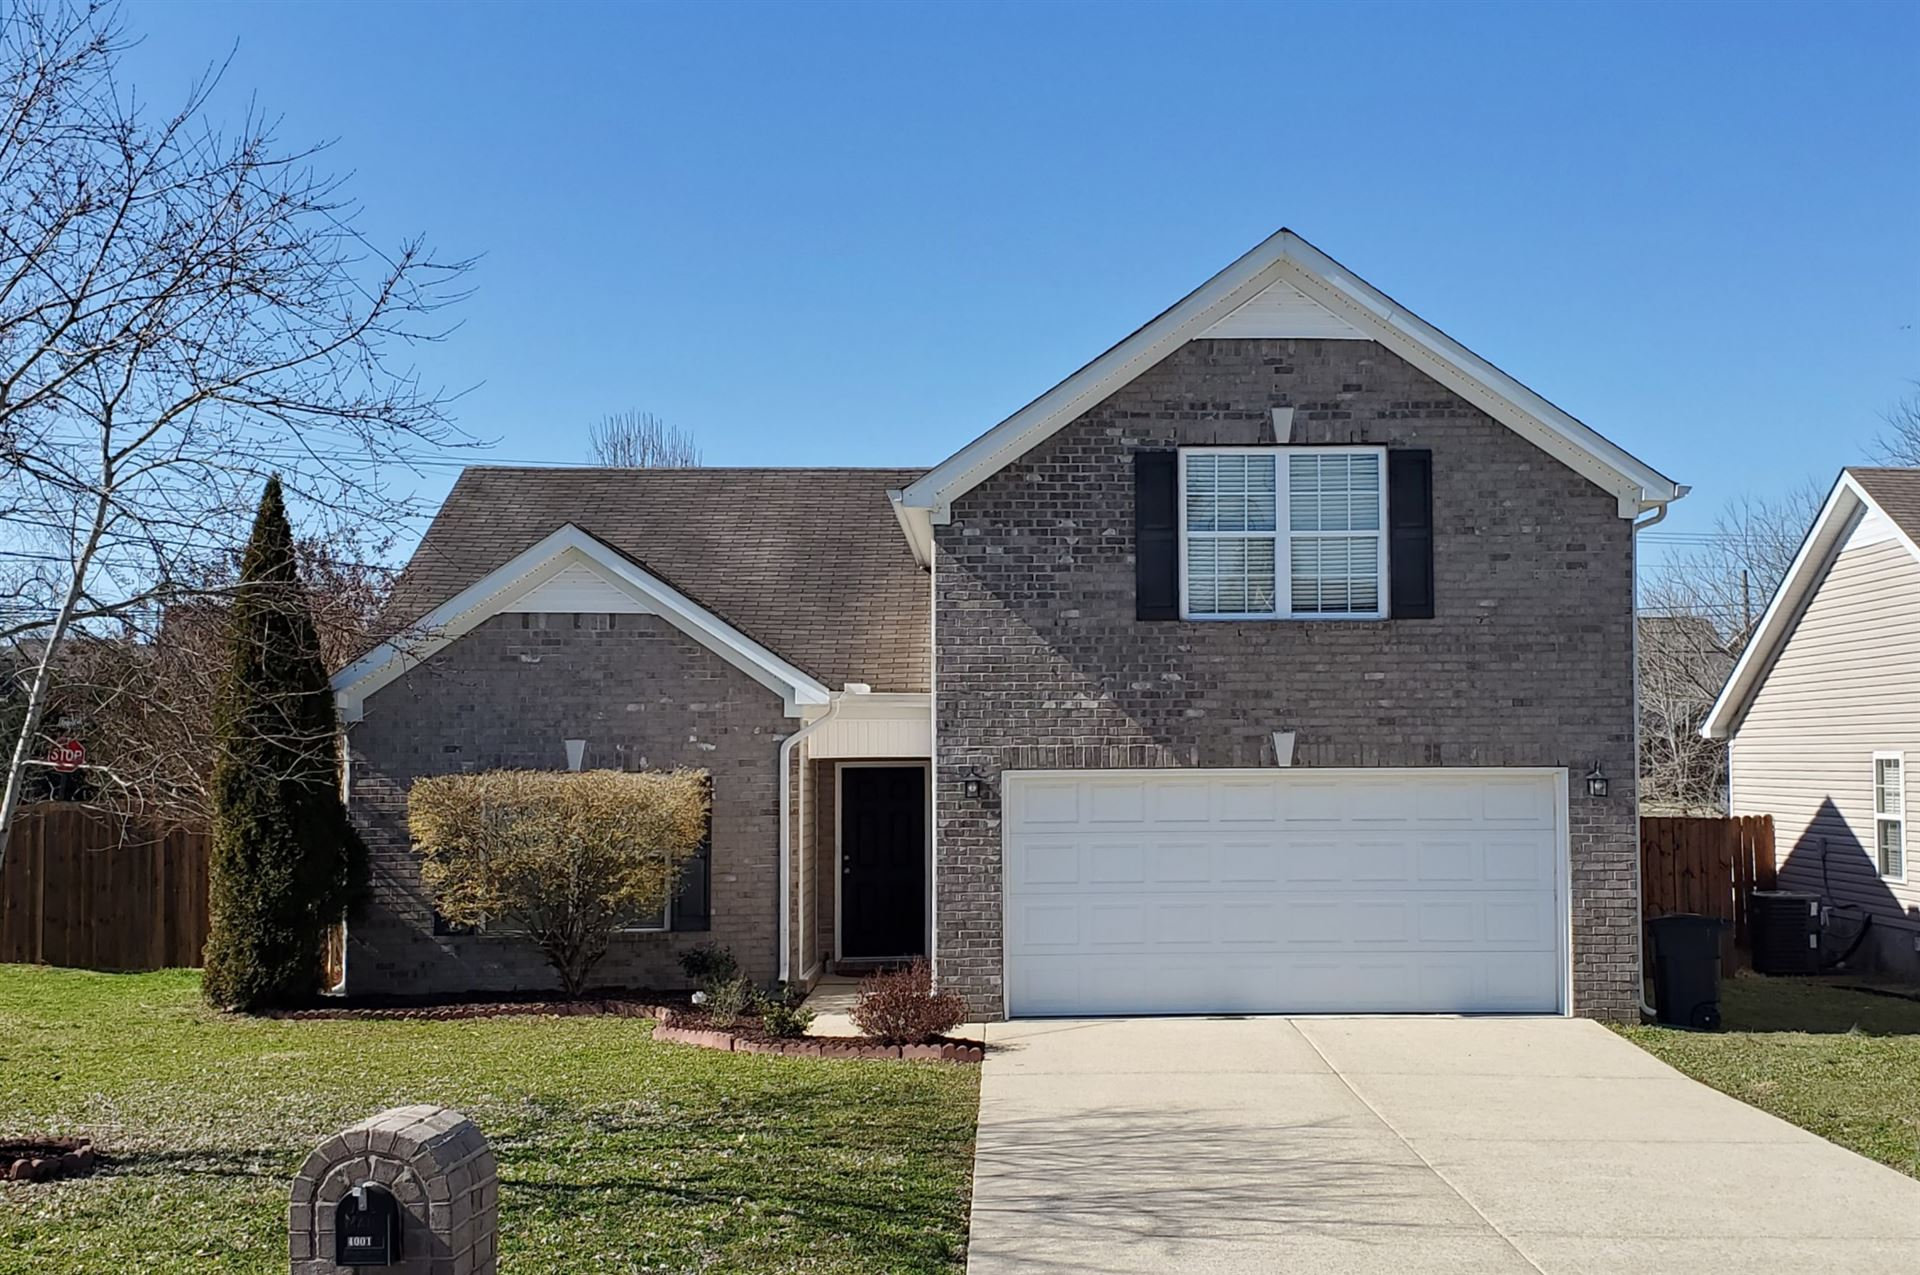 4001 Deer Run Trce, Spring Hill, TN 37174 - MLS#: 2230737